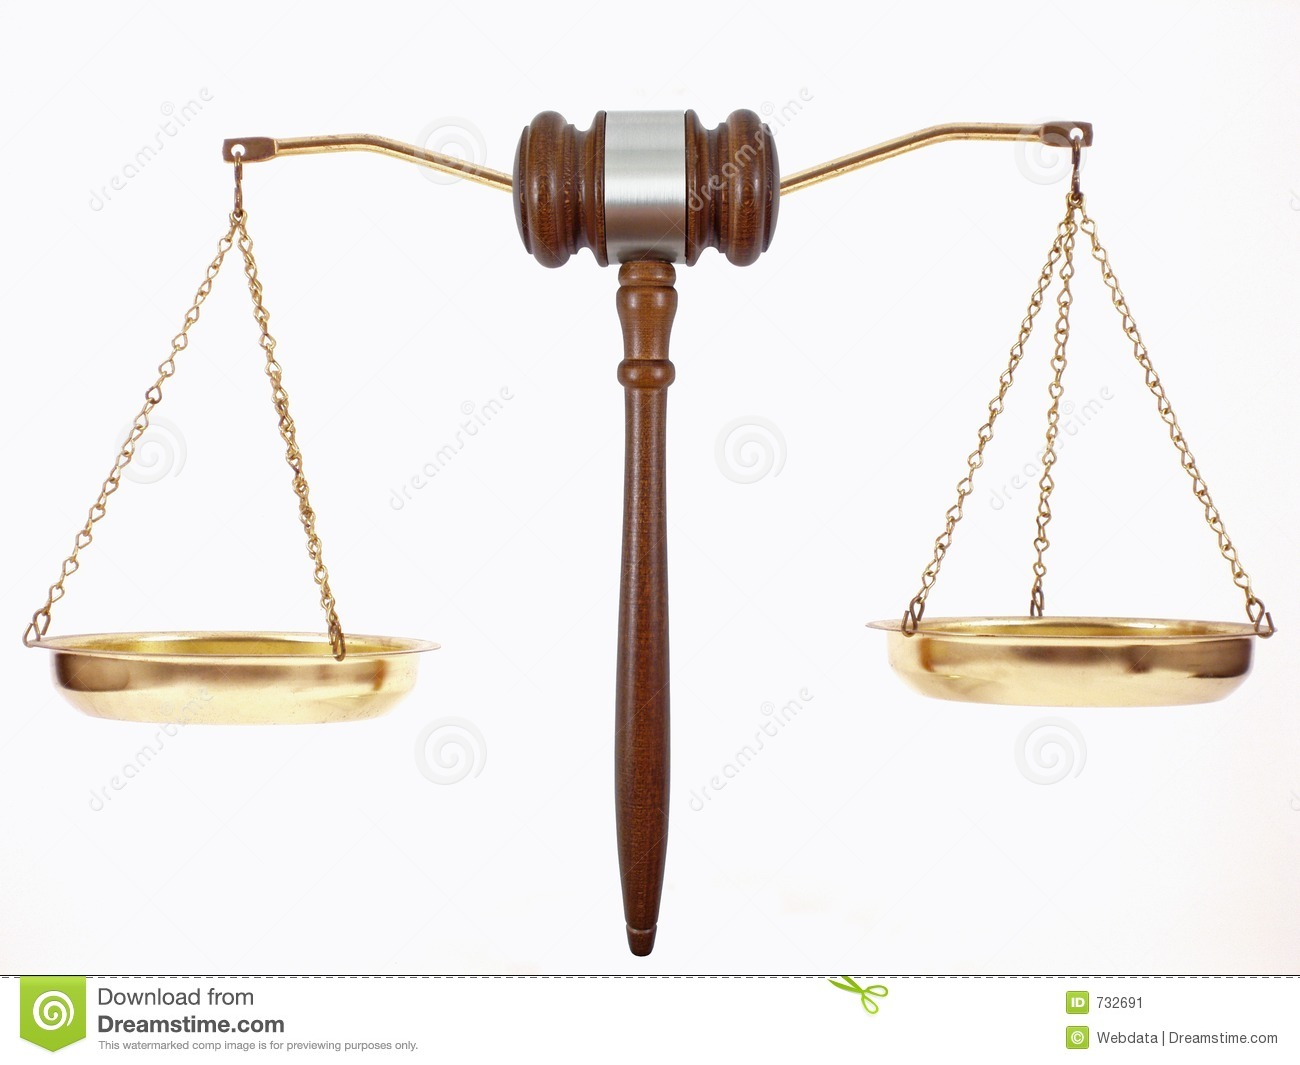 Gavel Scales Stock Image - Image: 732691